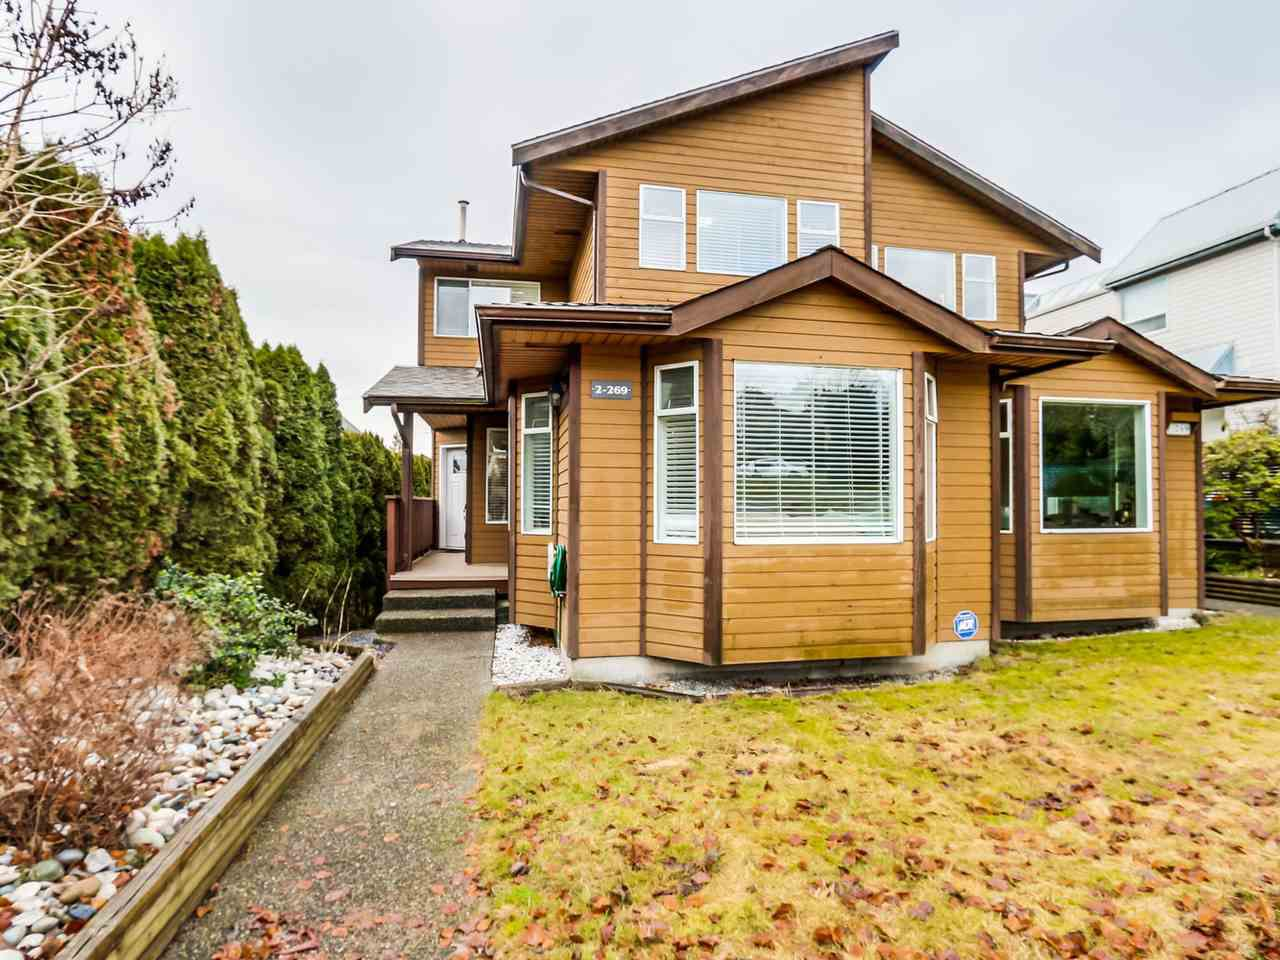 Photo 2: Photos: 2 269 E KEITH ROAD in North Vancouver: Lower Lonsdale House 1/2 Duplex for sale : MLS®# R2025742